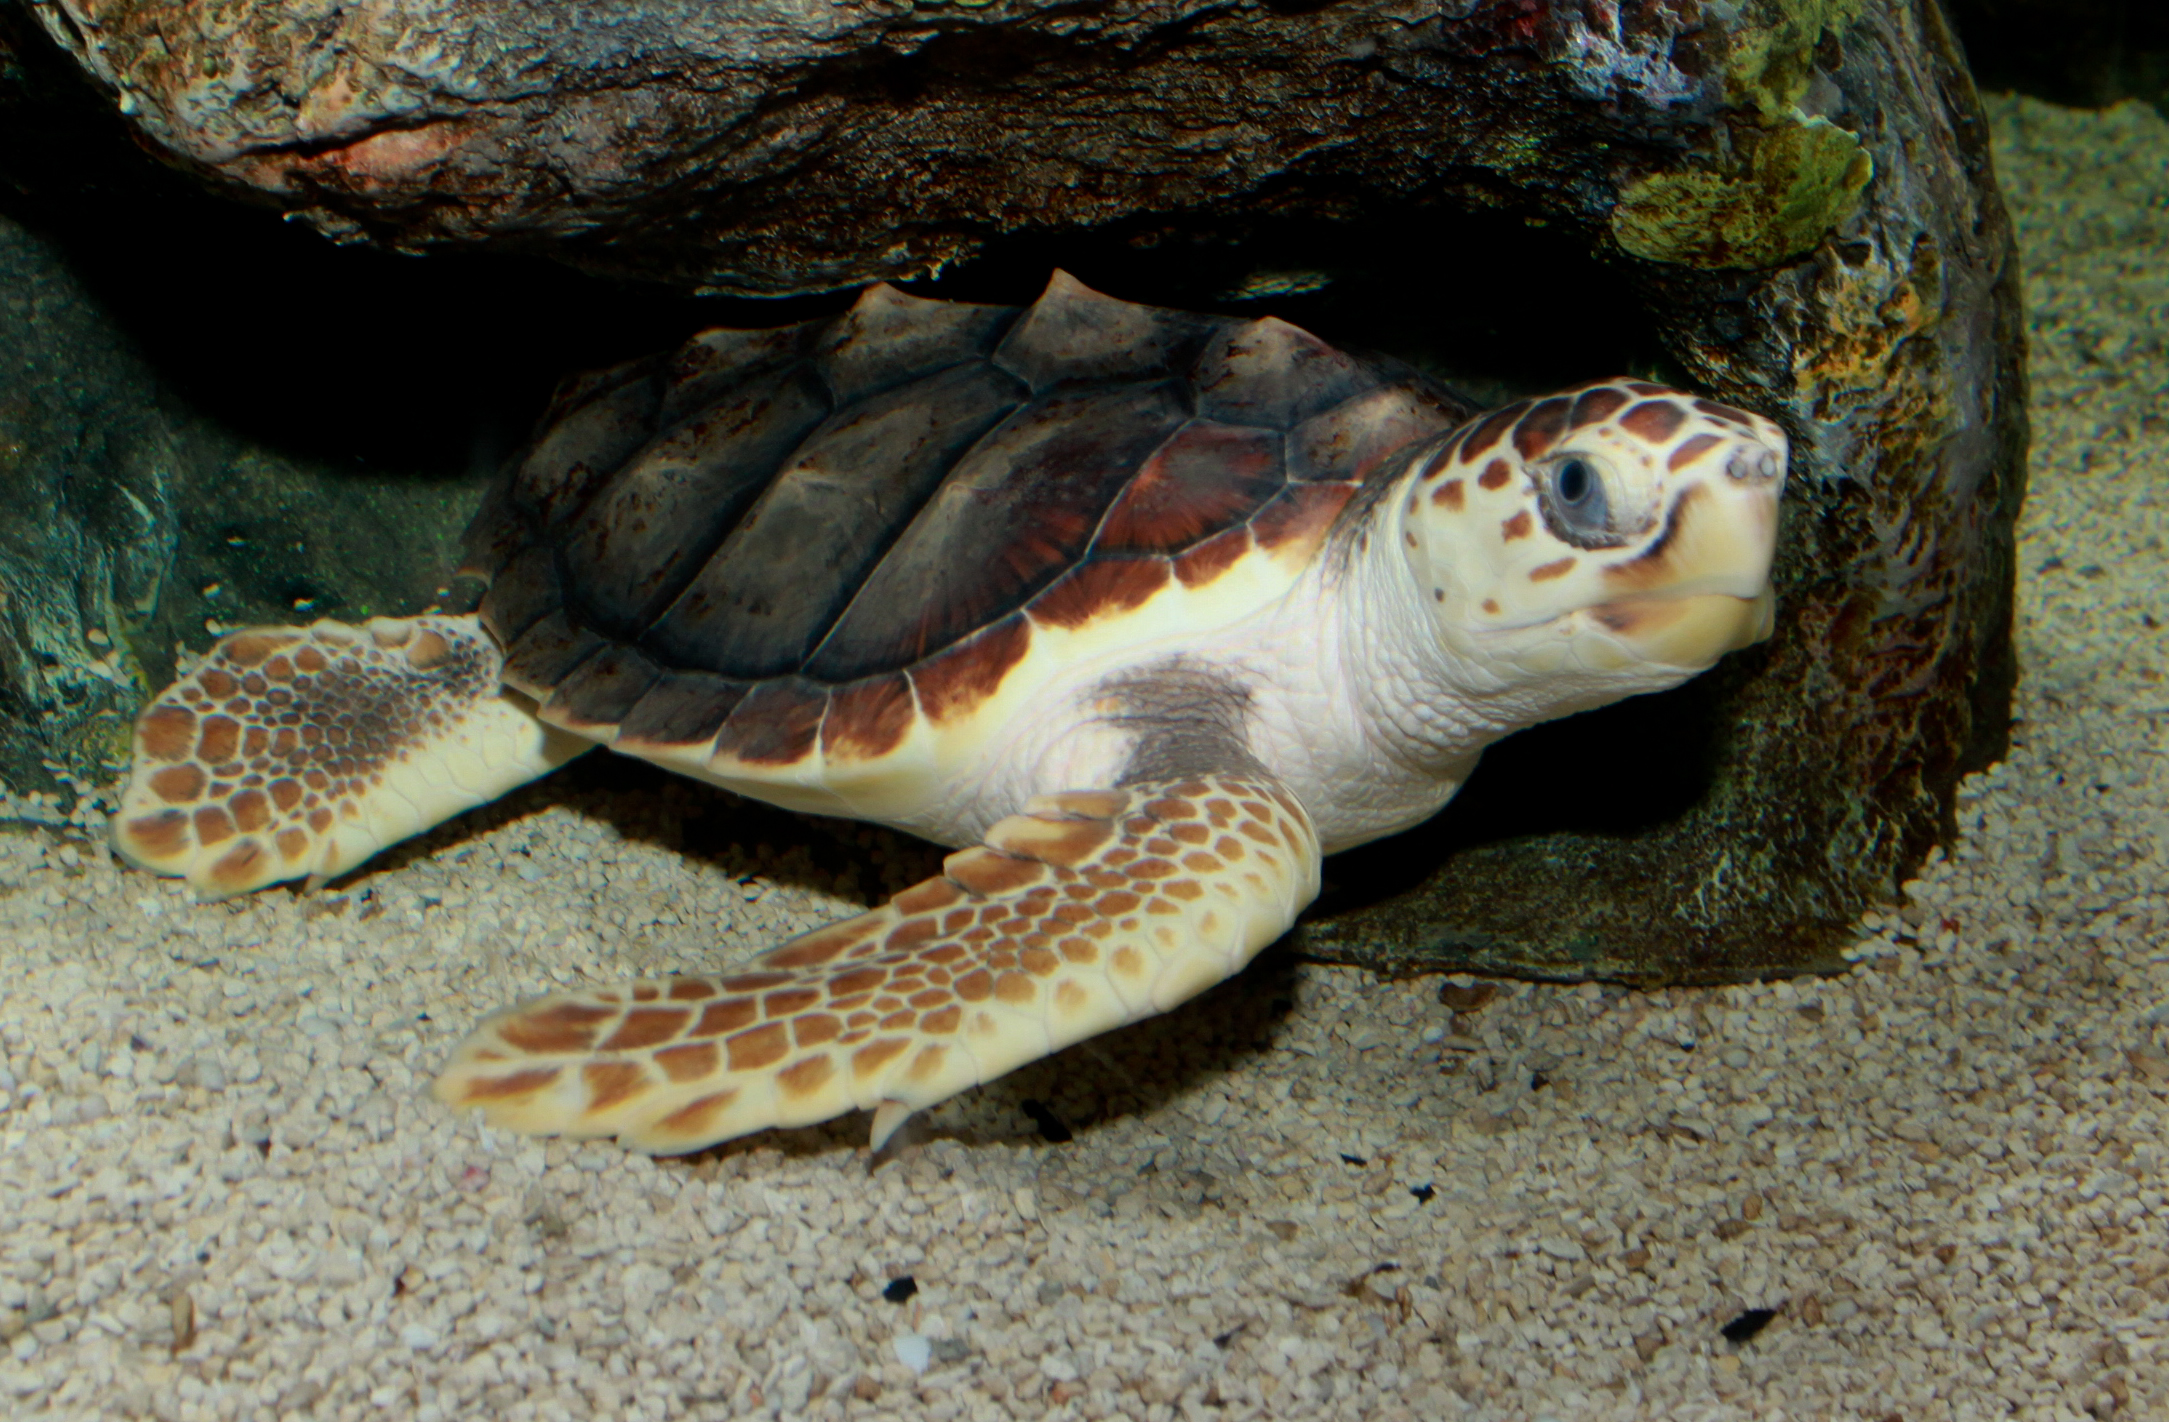 5 interesting facts about loggerhead sea turtles | hayden's animal facts